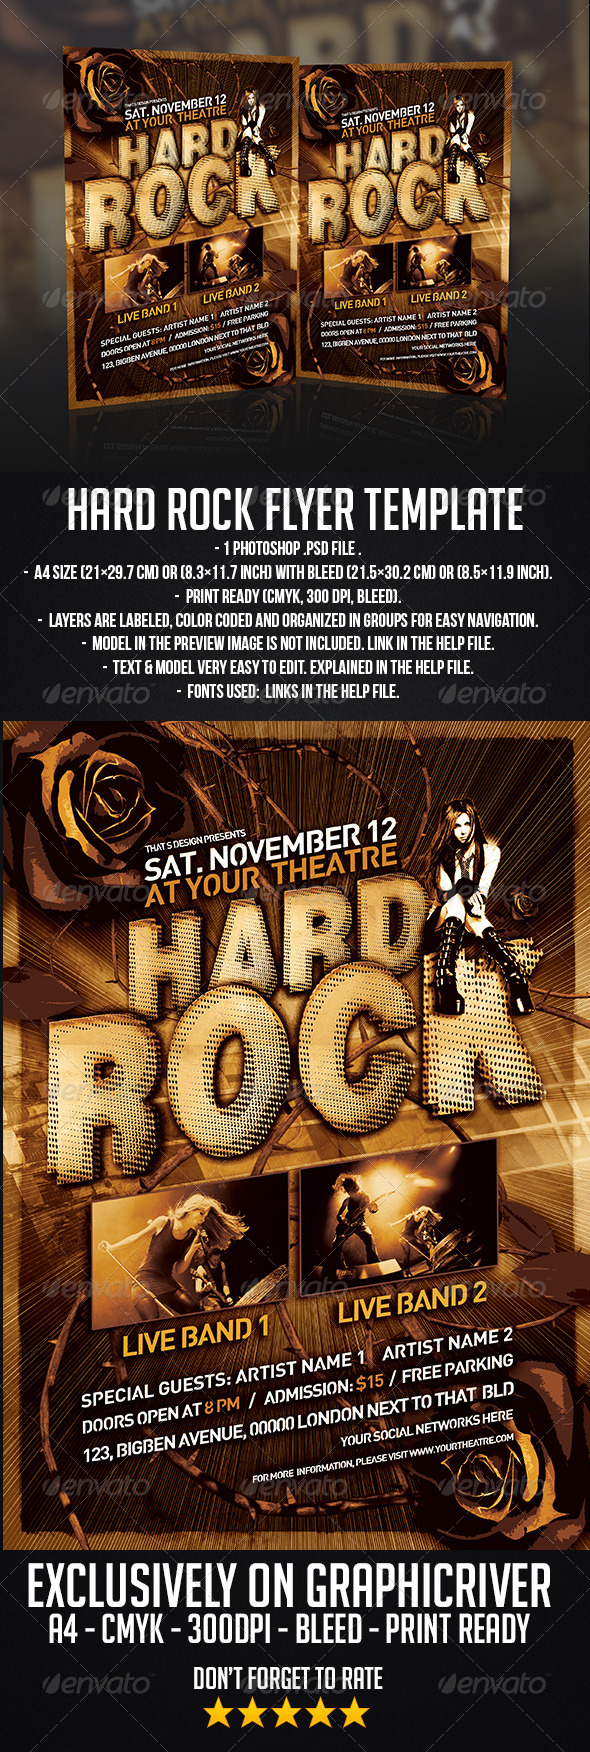 GraphicRiver Hard Rock Flyer Template 6363694